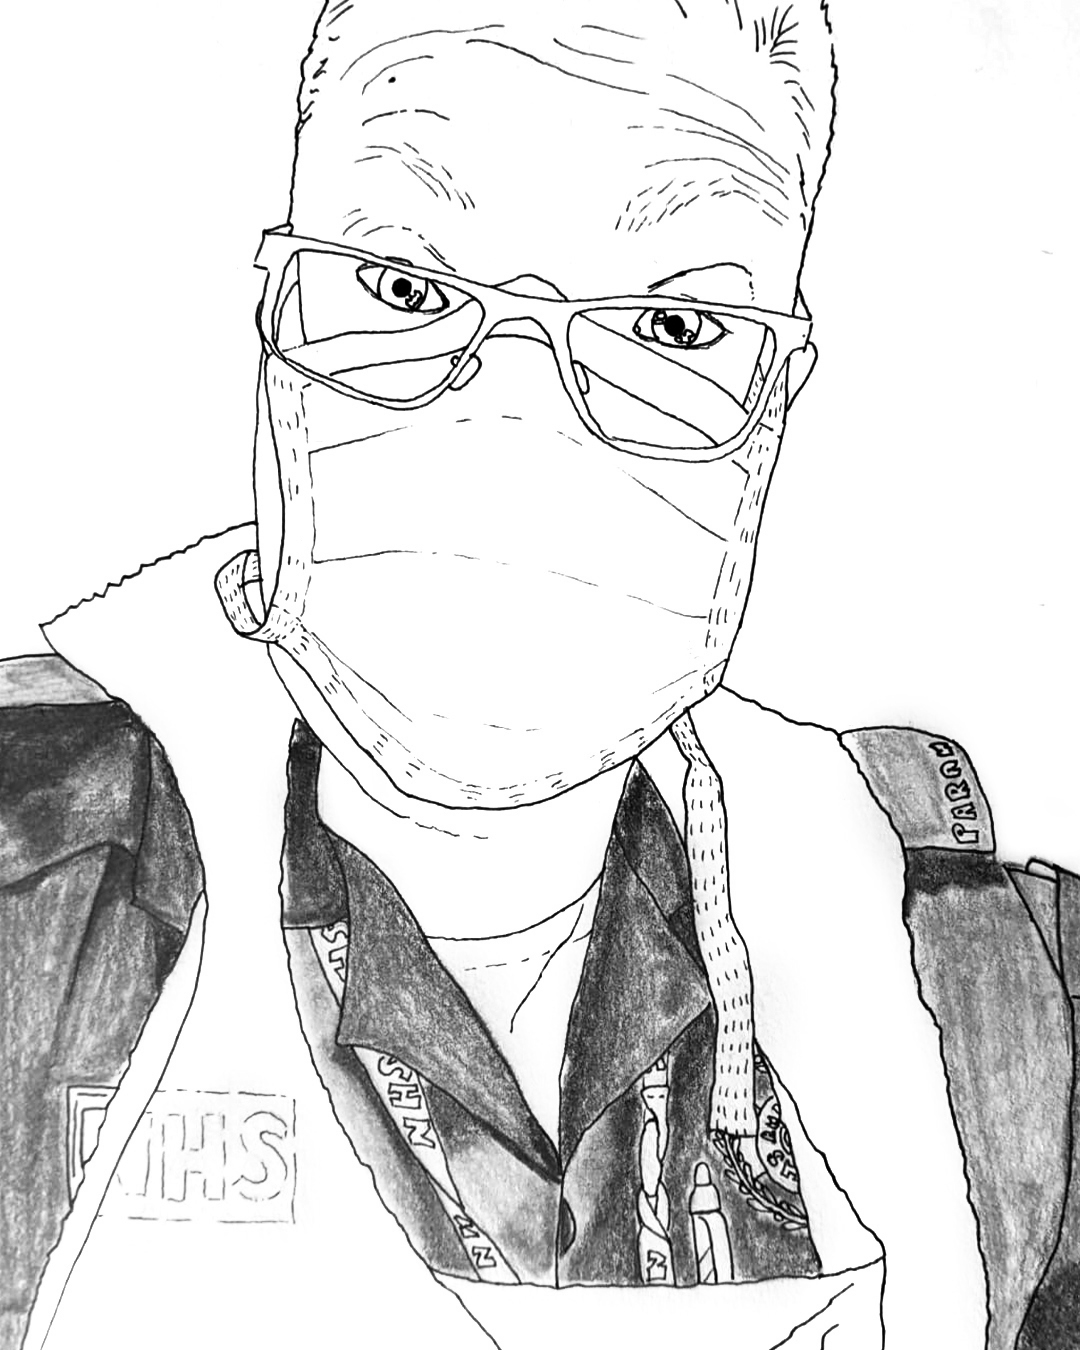 DRAWING - NHS BRENDAN